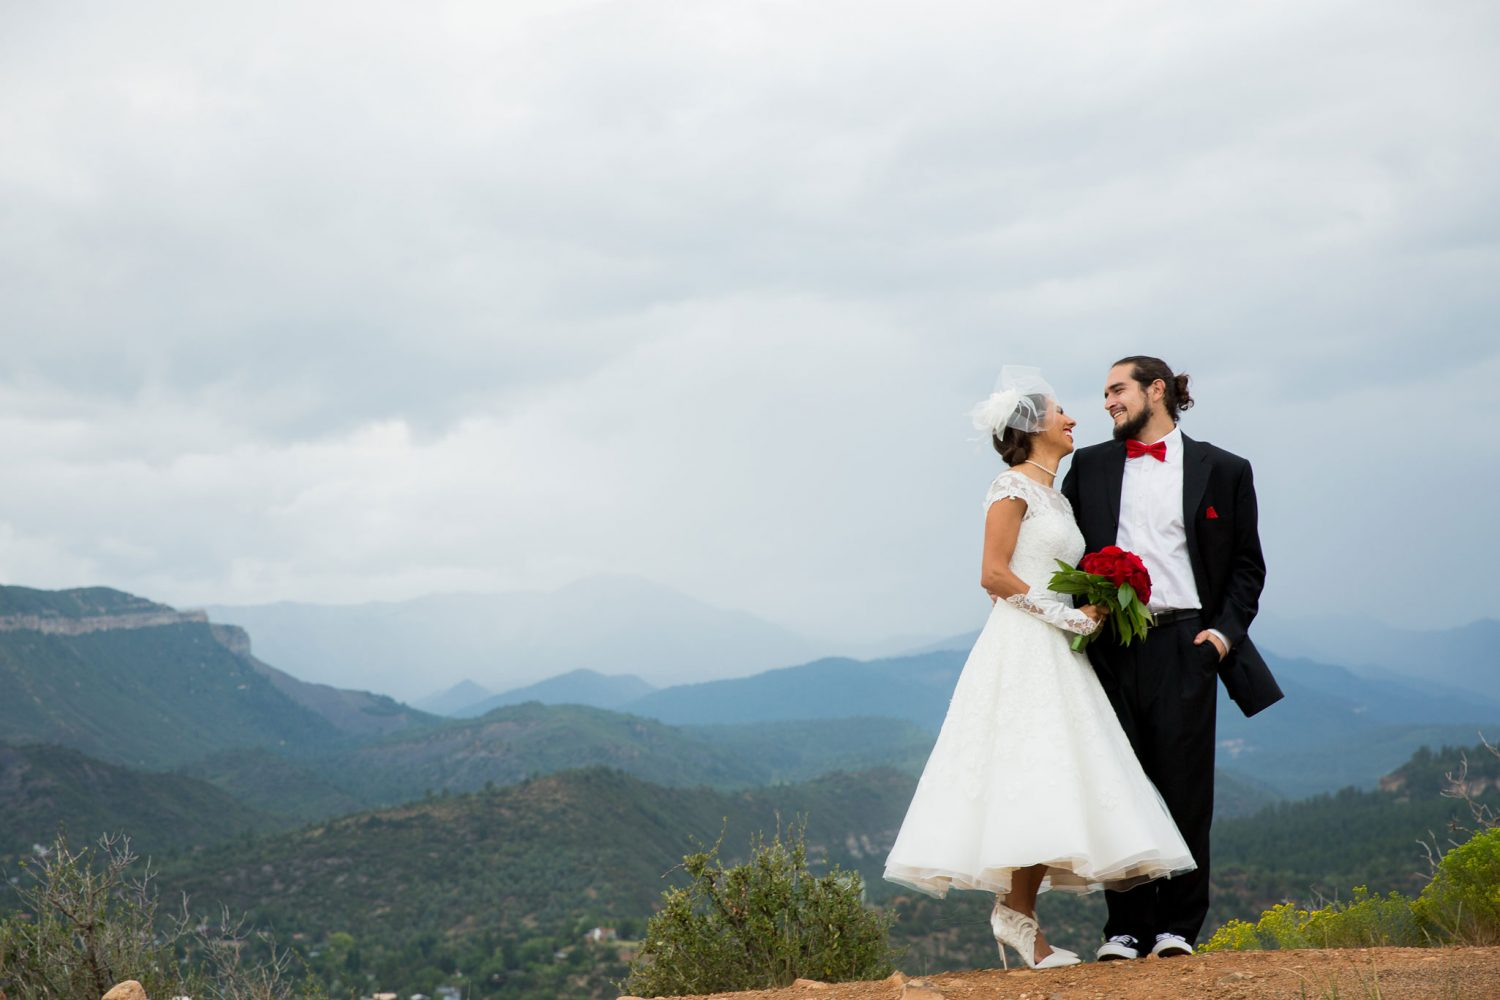 A Vintage Destination Wedding at The Historic Strater Hotel